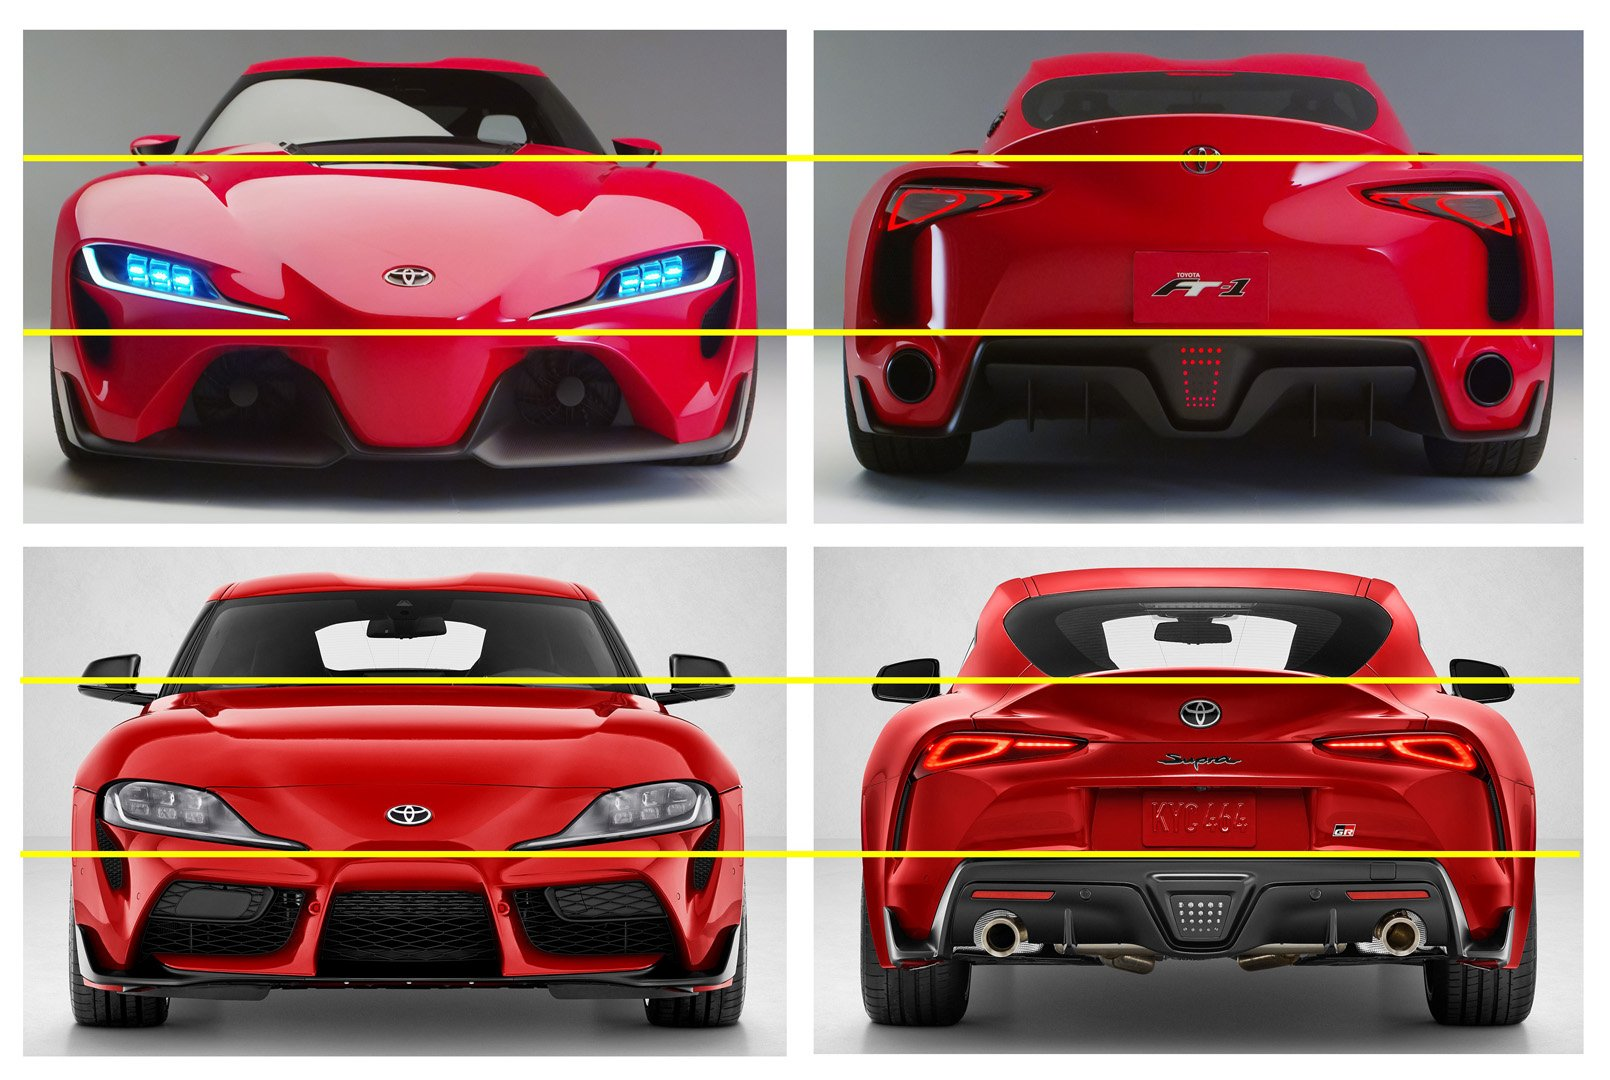 Toyota FT 1 Vs Supra Frontal Trasera